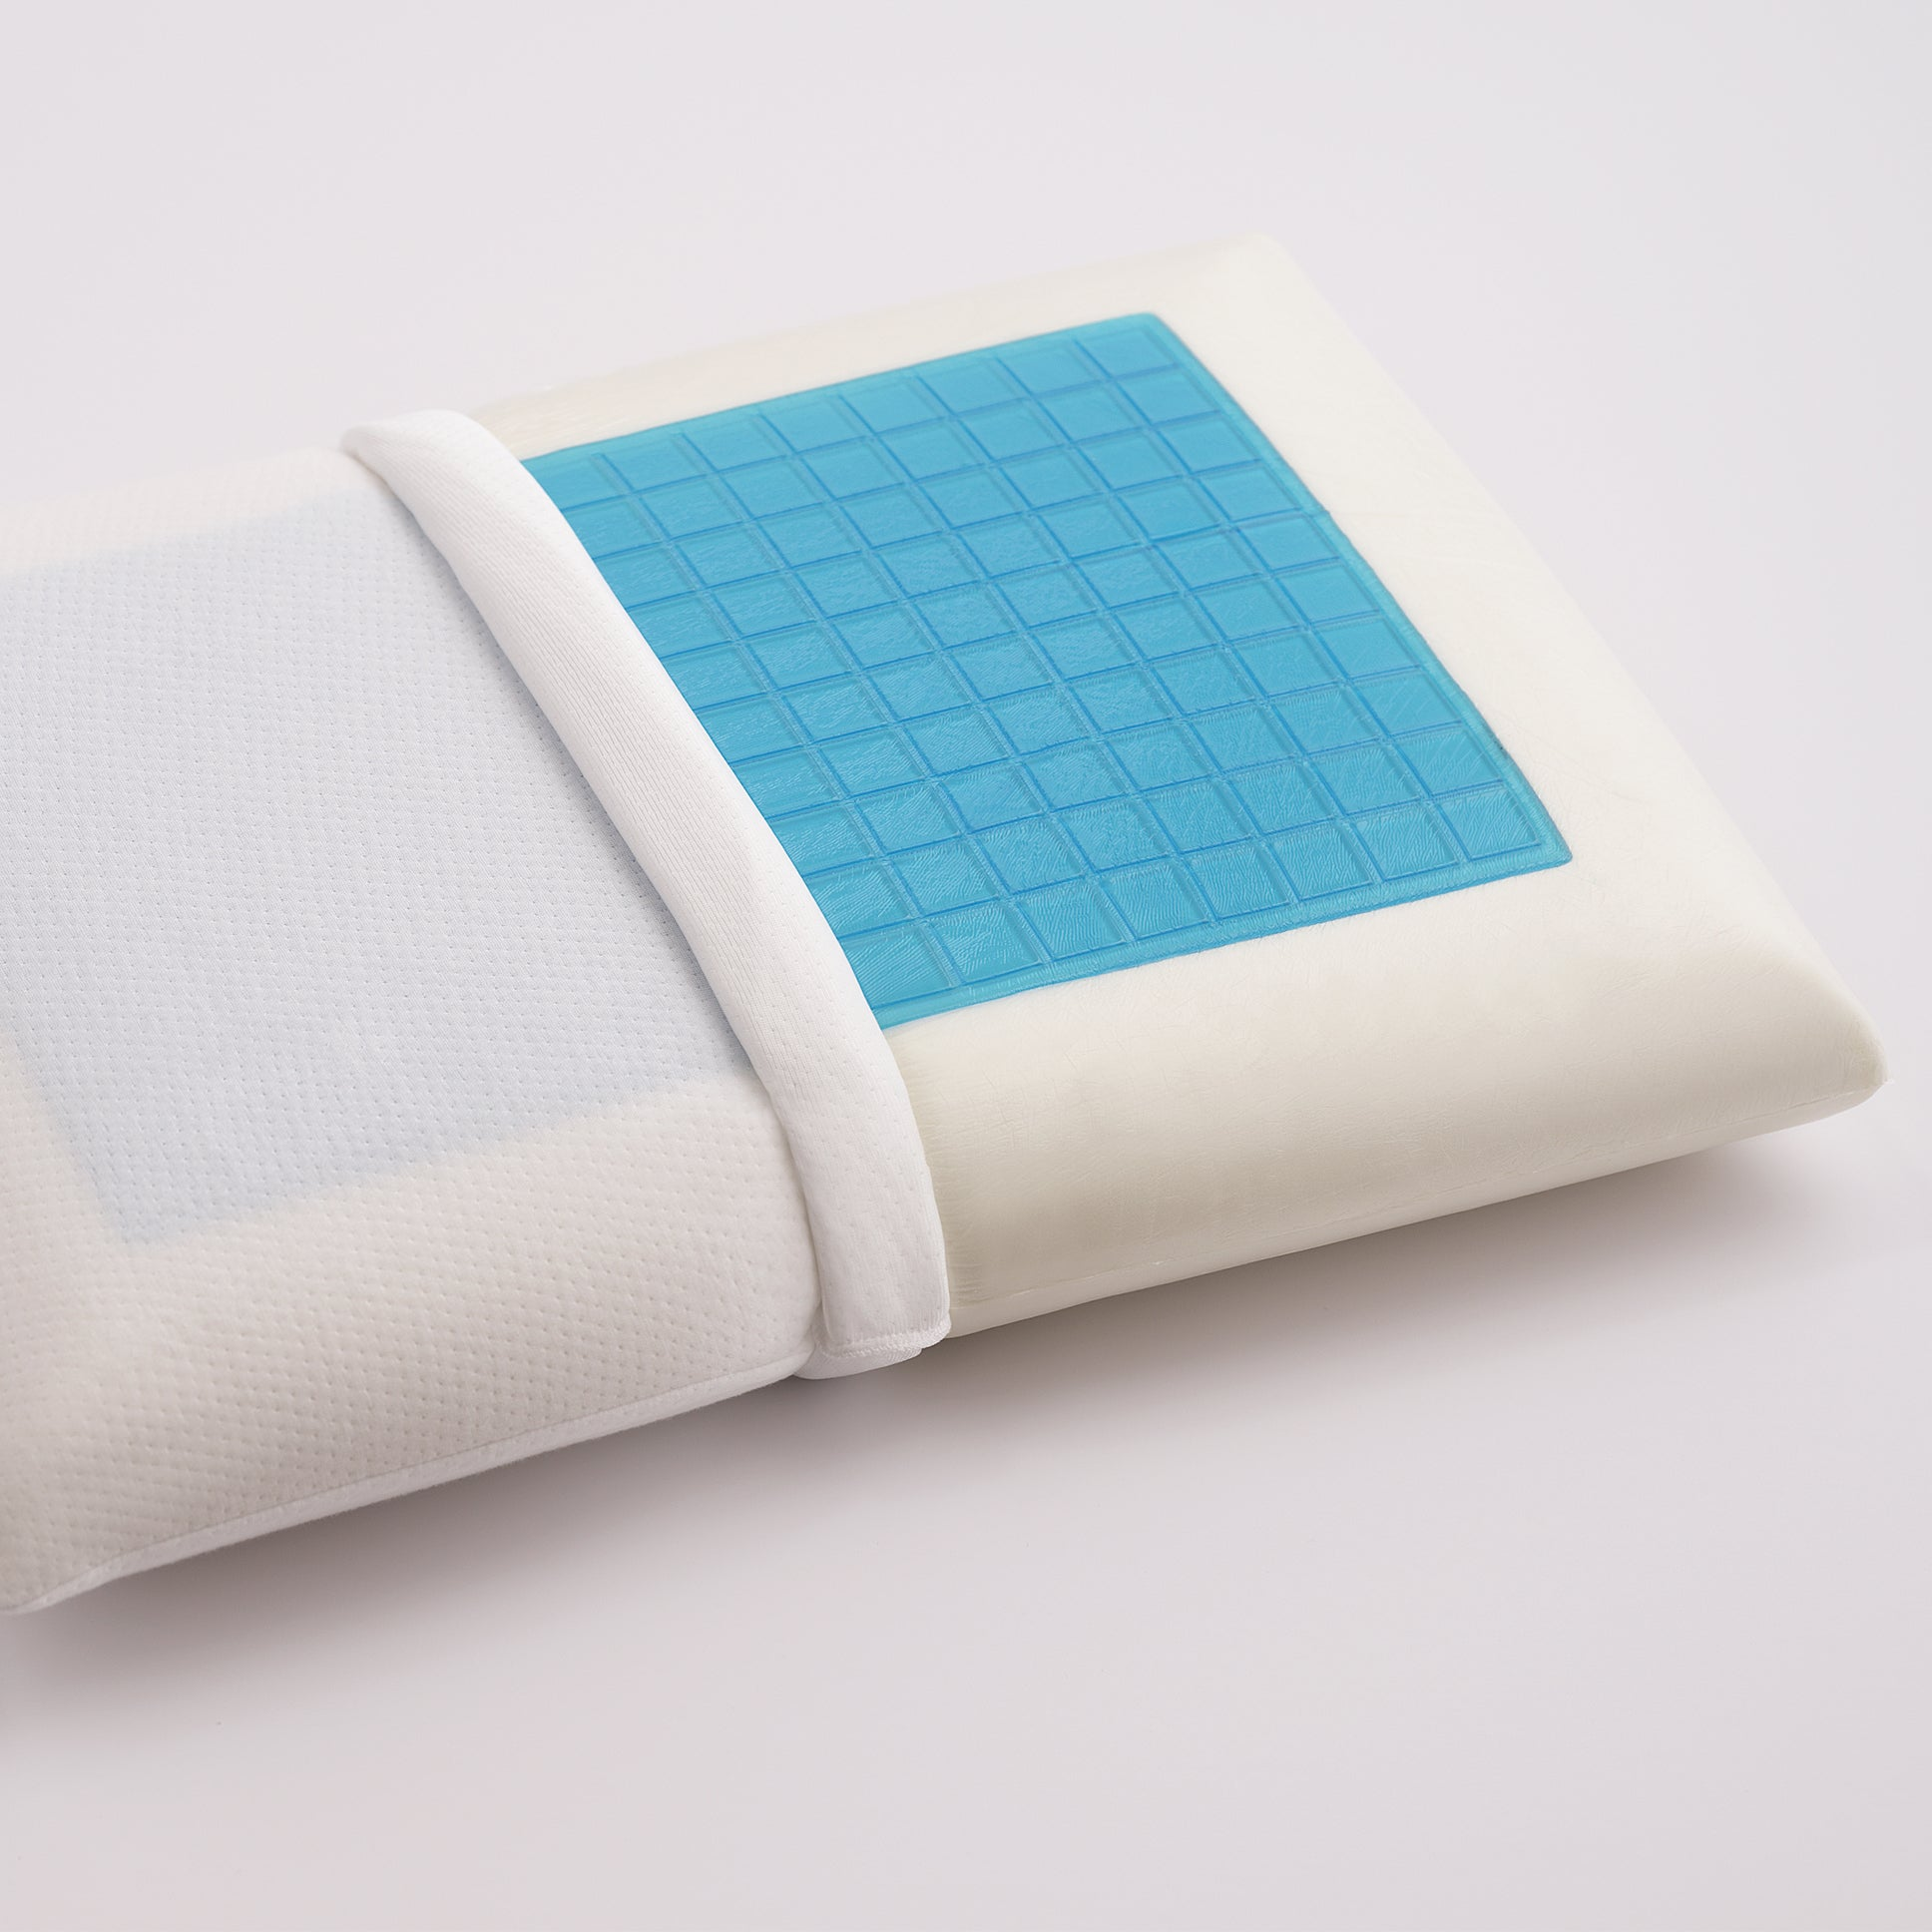 Cooling Gel Memory Foam Bed Pillow with CoolMax Cover